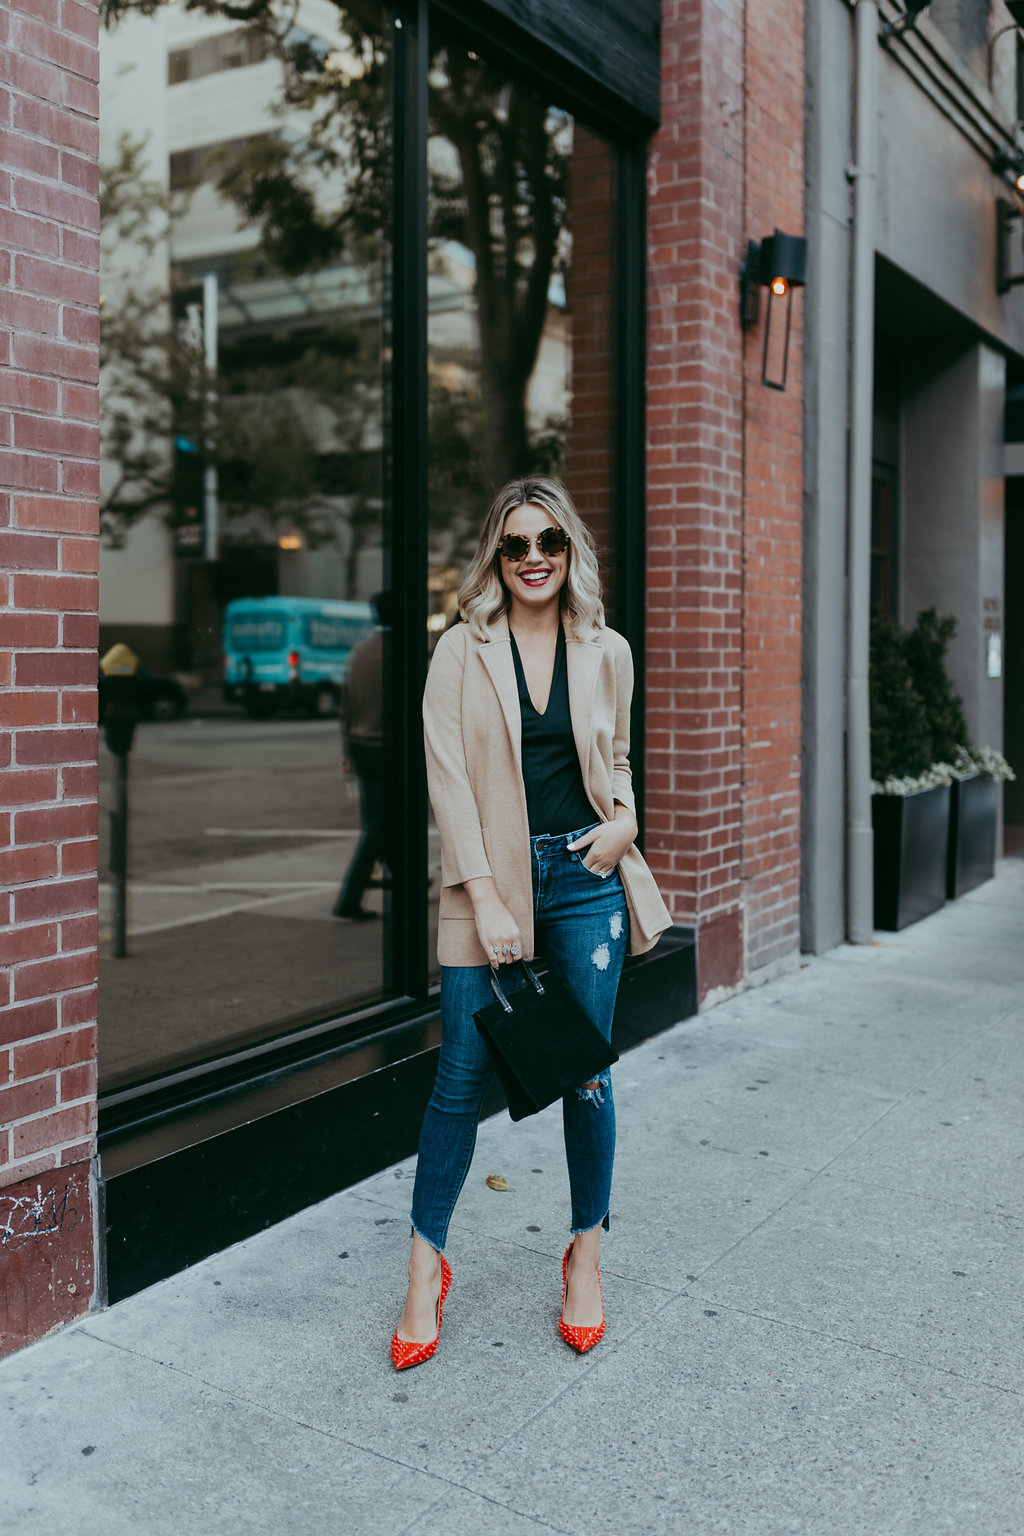 Houston fashion blogger Uptown with Elly Brown shares why every woman needs at least one Blazer Jacket in her closet and why. Click here for more!